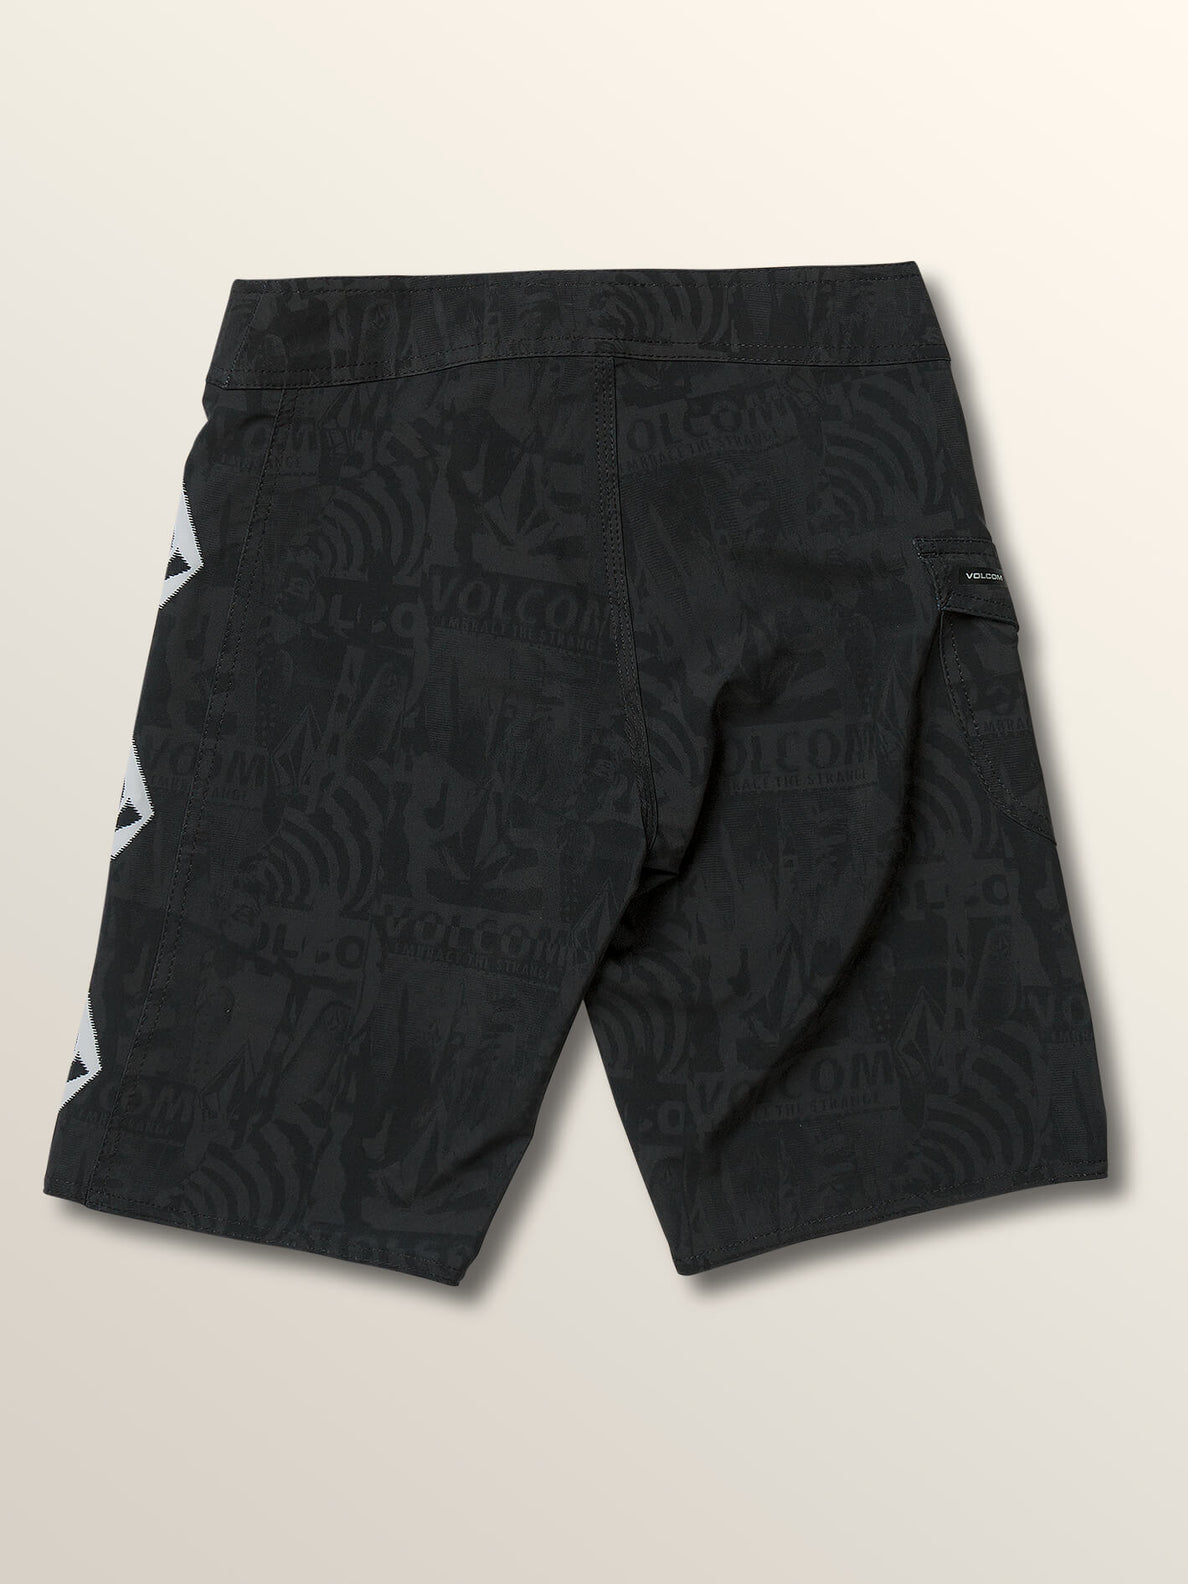 Big Boys Deadly Stones Mod Boardshorts In Black, Back View